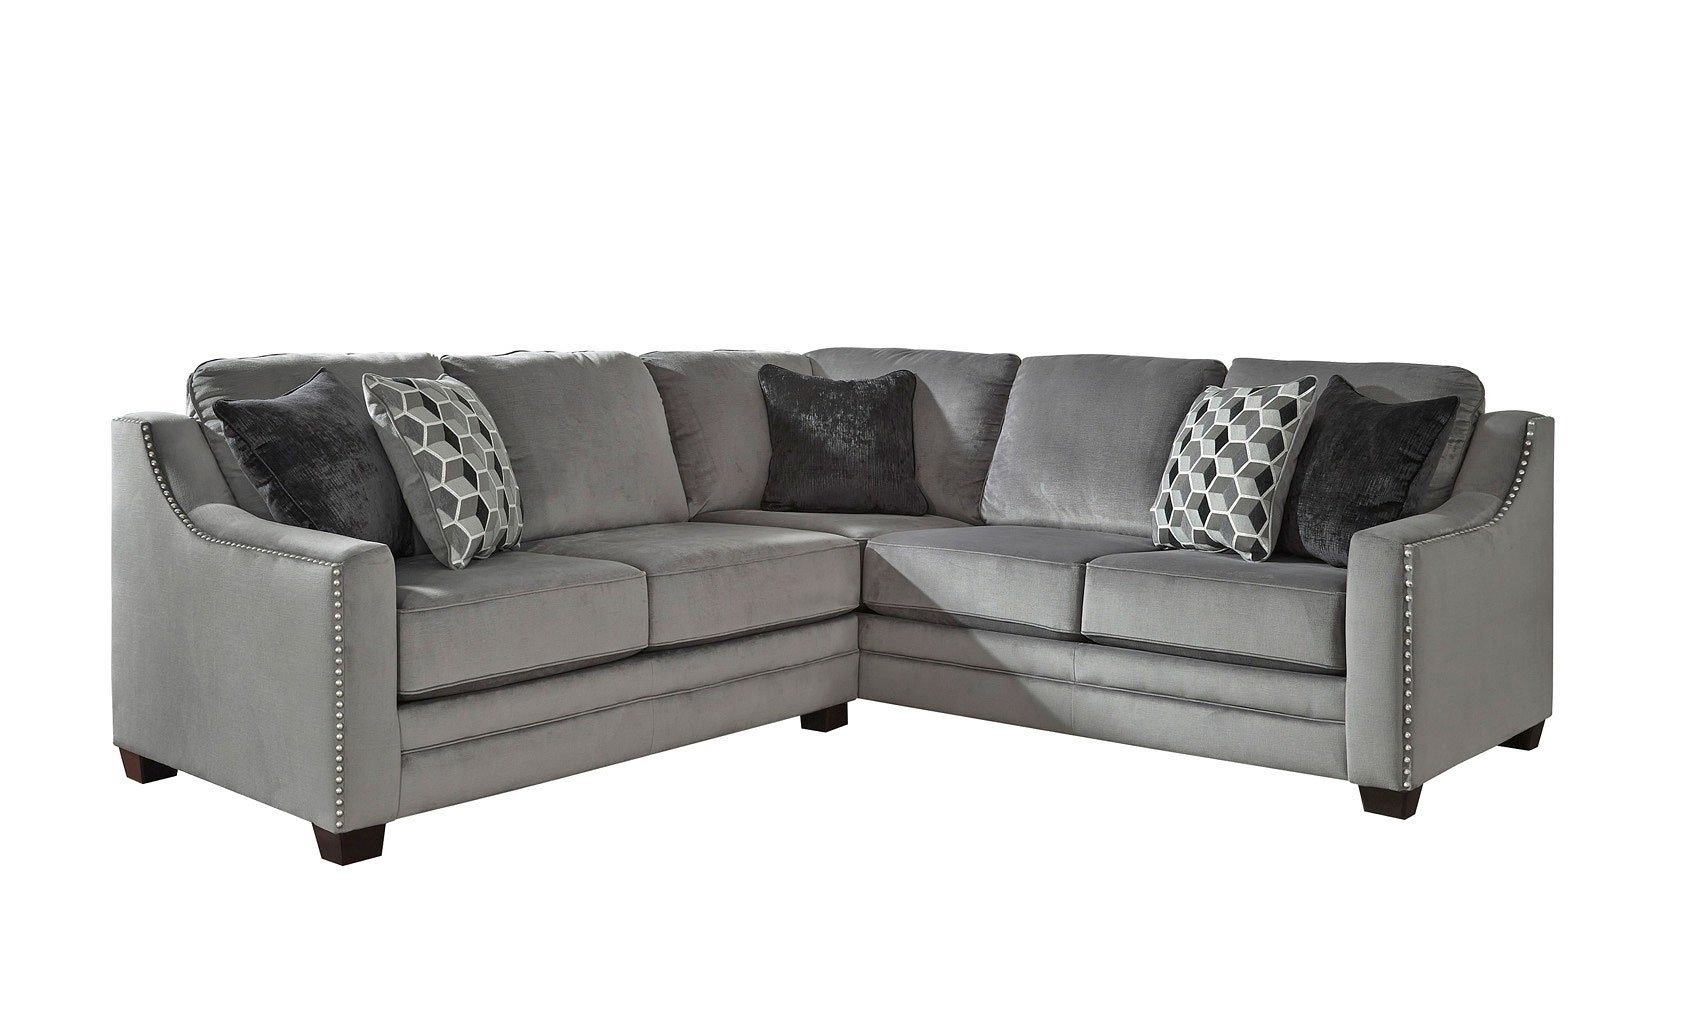 Loveseat Sectional | Whitecraftwoodard Mona Wicker Right Arm Inside Turdur 2 Piece Sectionals With Laf Loveseat (View 21 of 25)